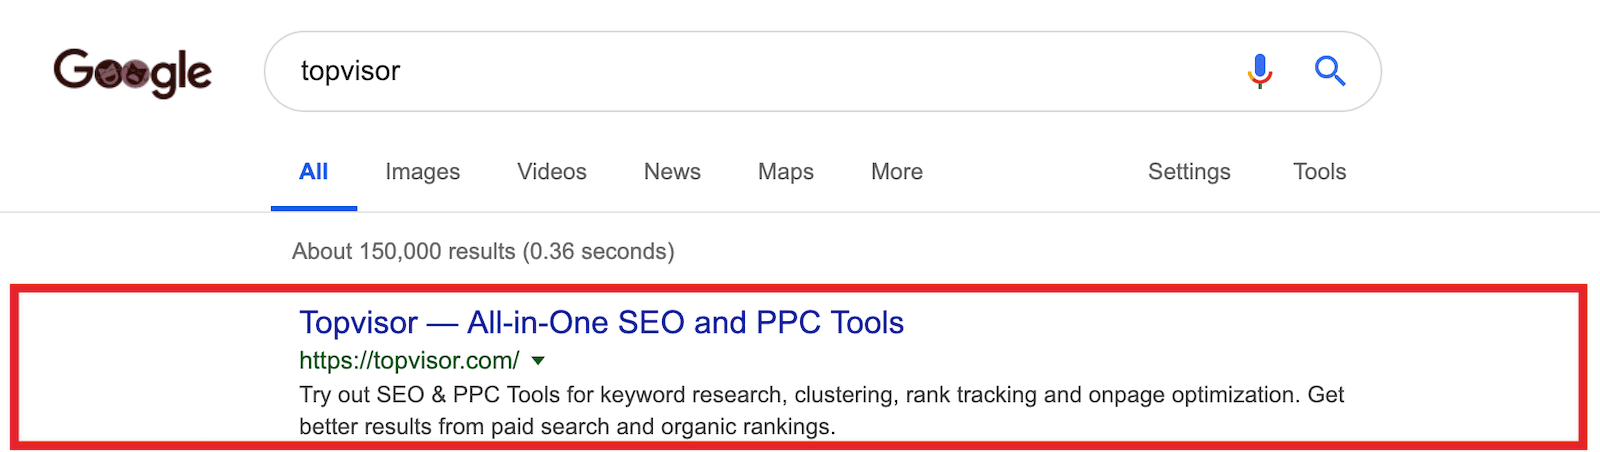 Snippet in search results